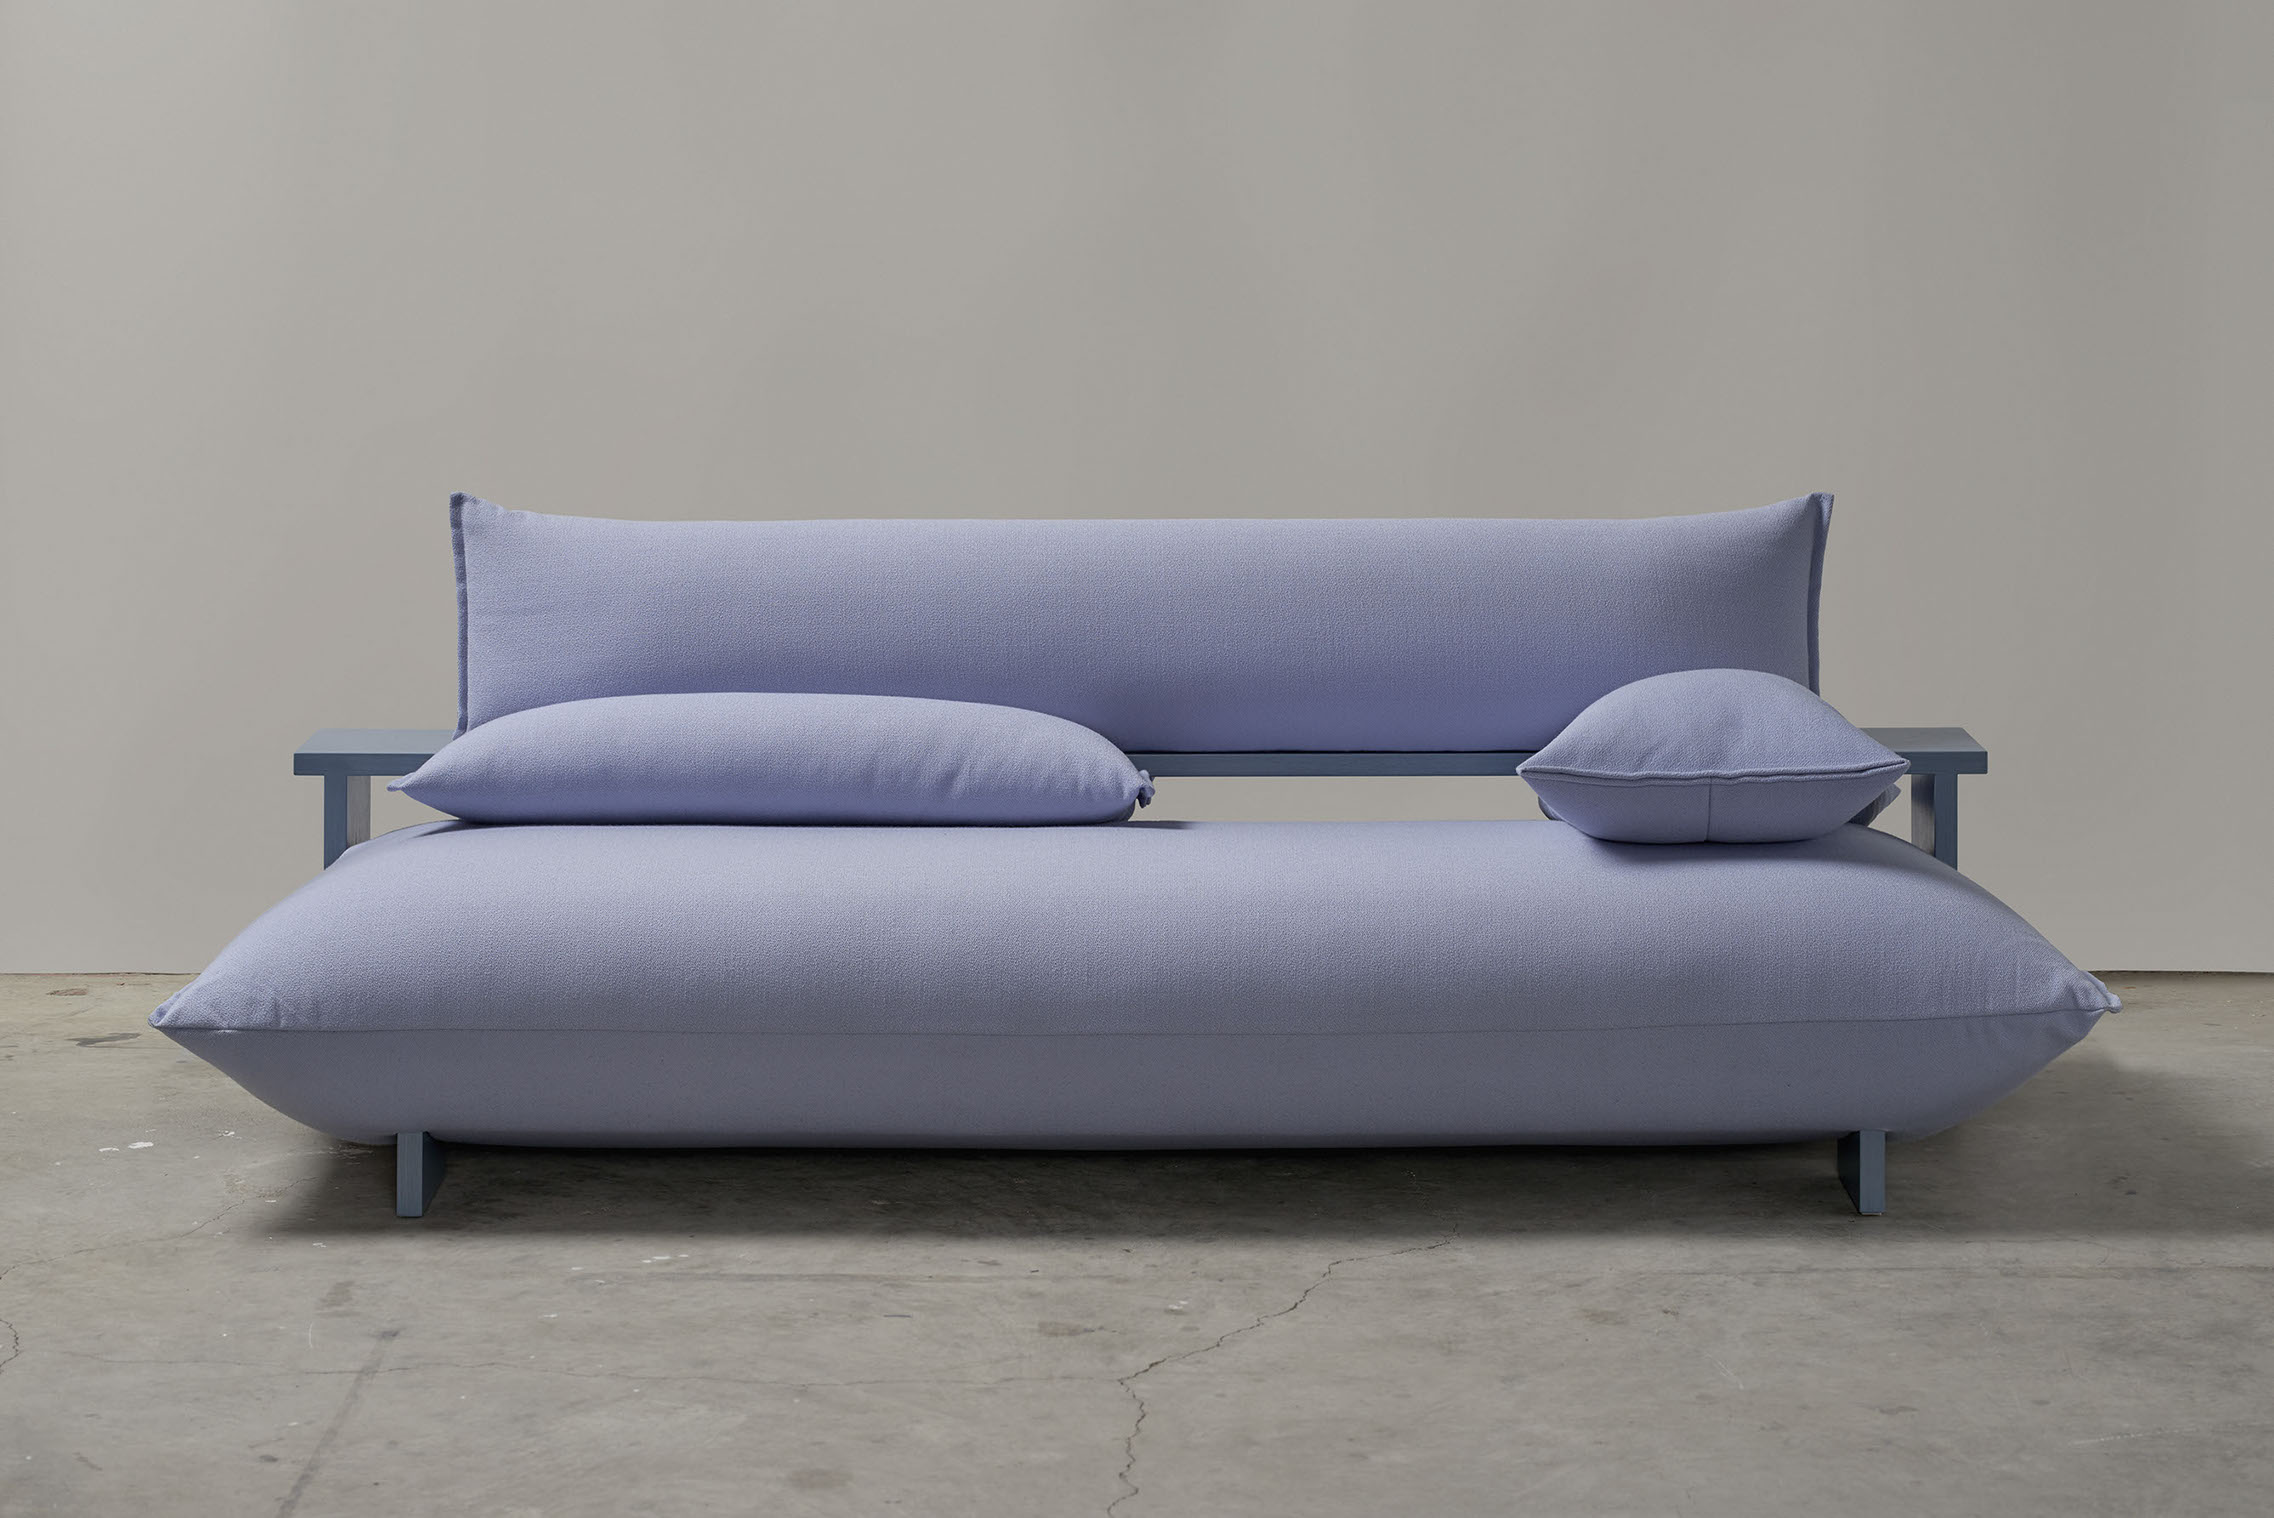 Press Sofa by Studio Truly Truly